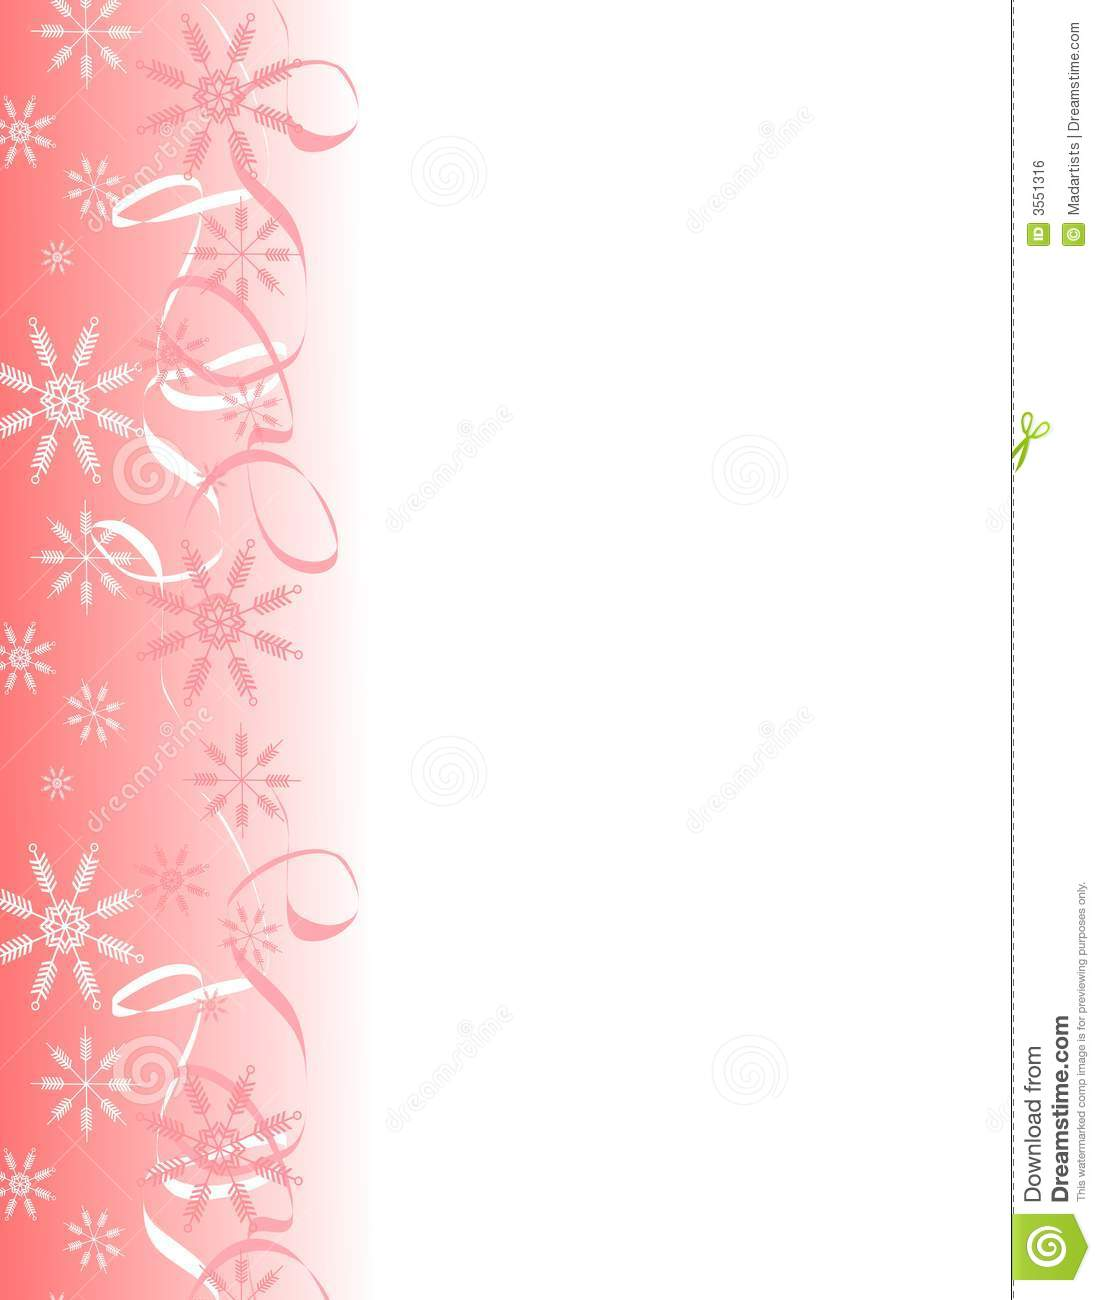 holiday page borders for free.